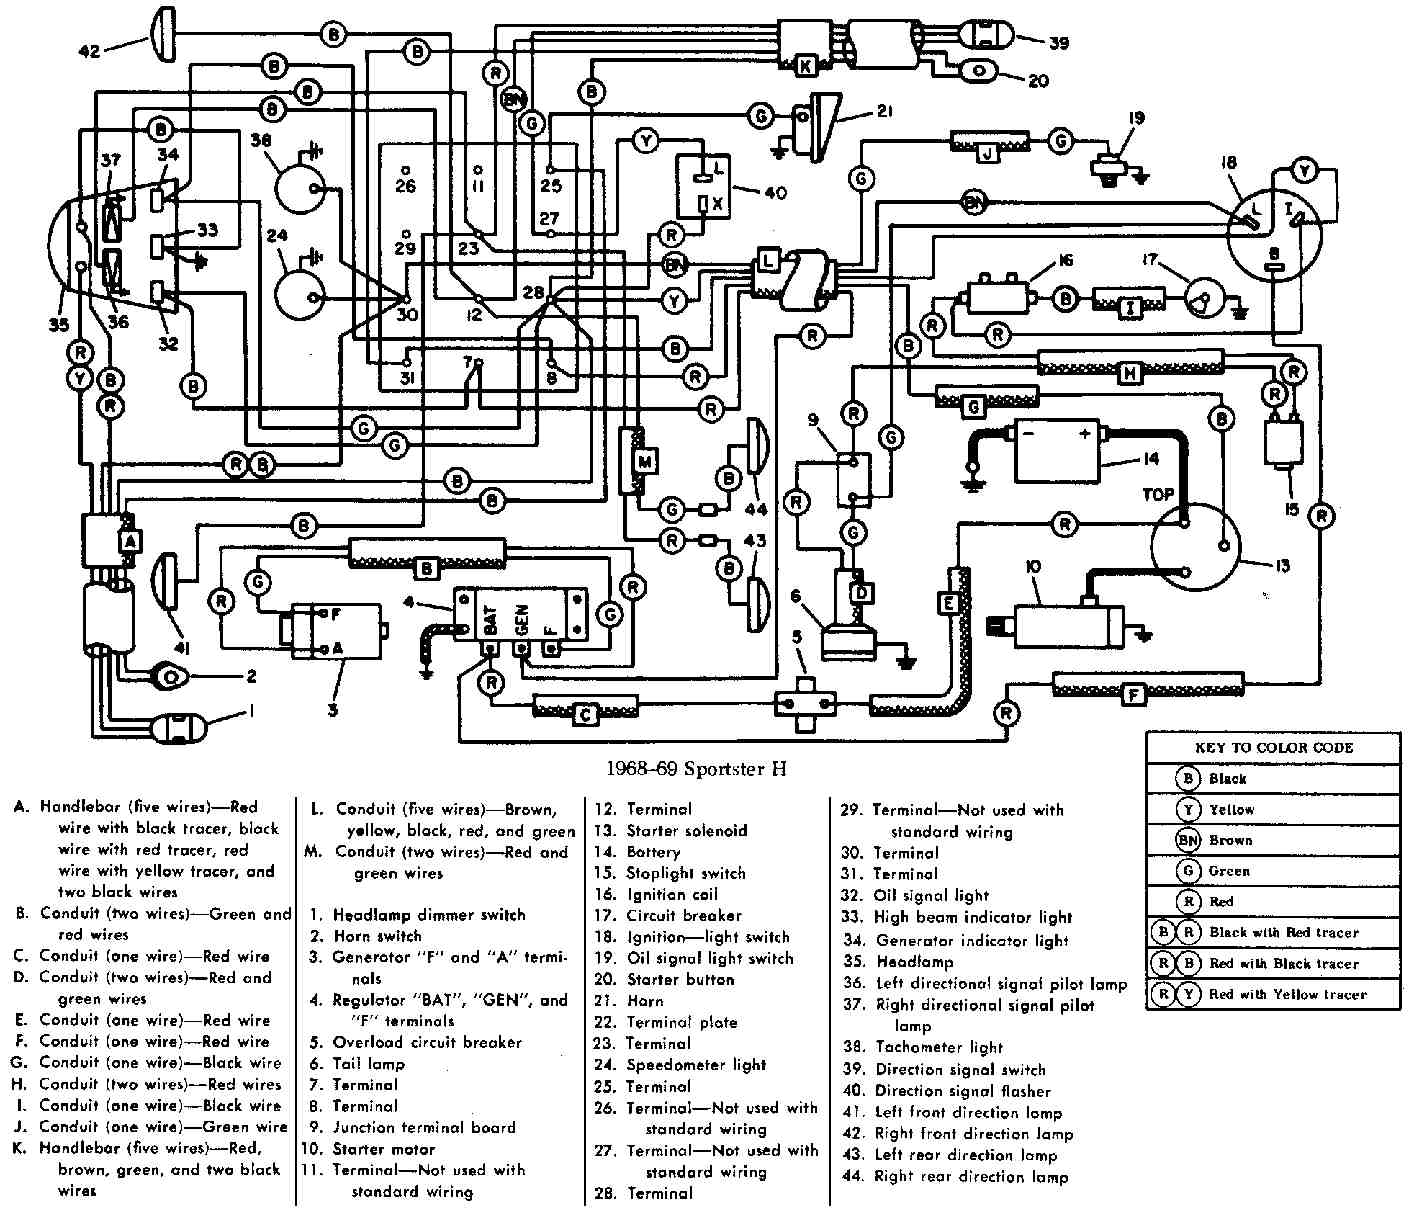 96 Sportster Wiring Diagram on kawasaki atv wiring diagram